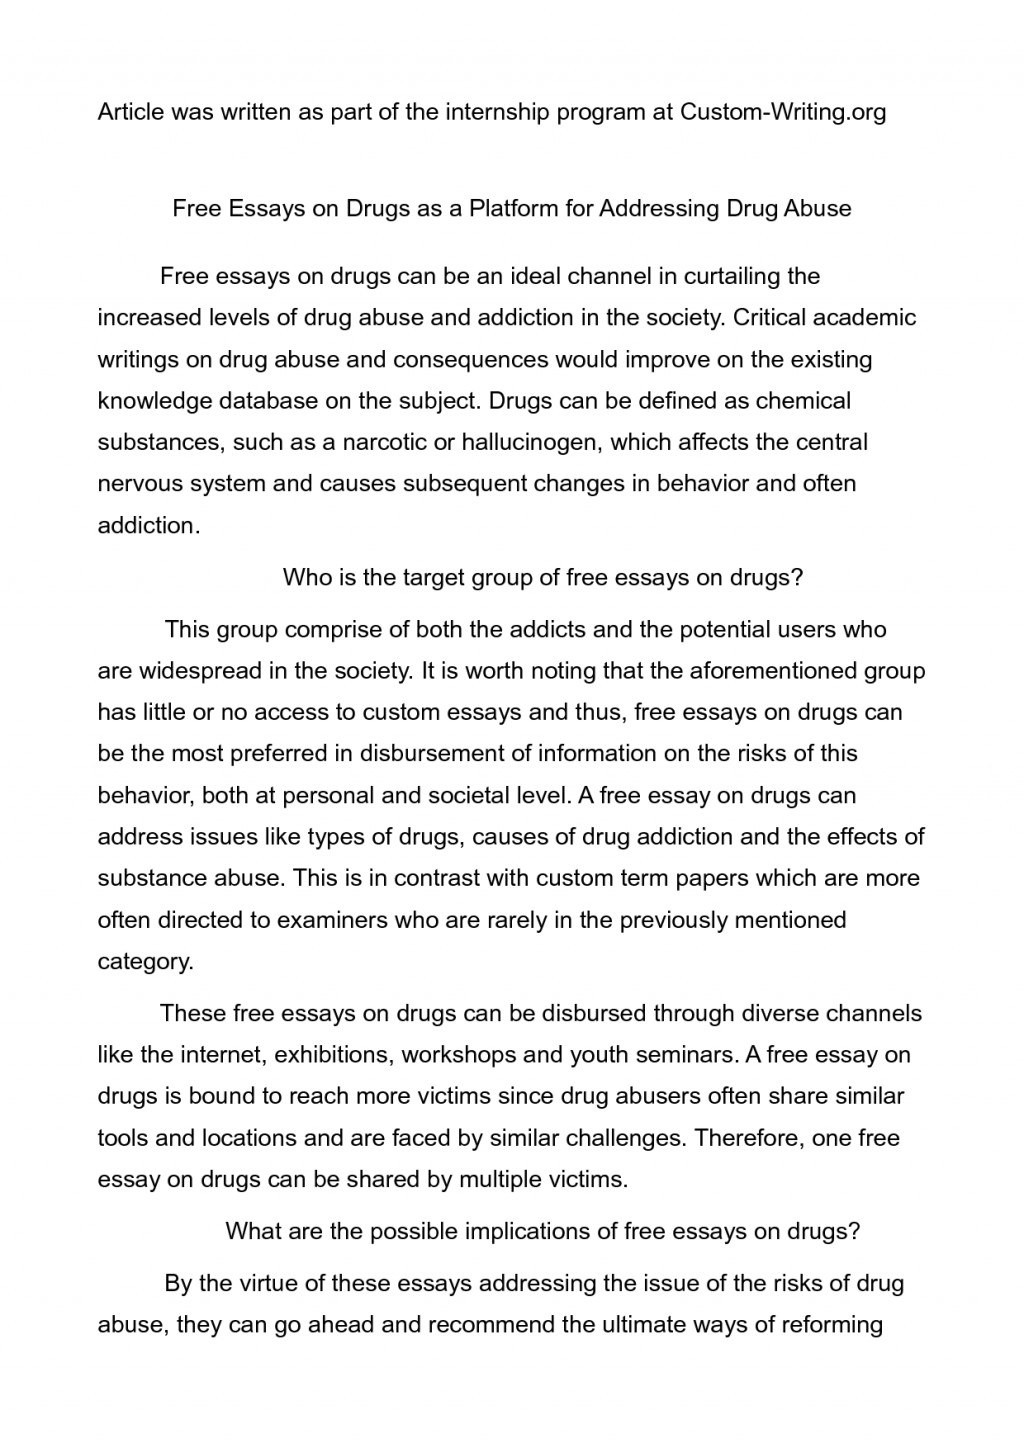 009 Argumentative Essay About Drugs Amazing Definition Pdf Sample Middle School Topics For High Large